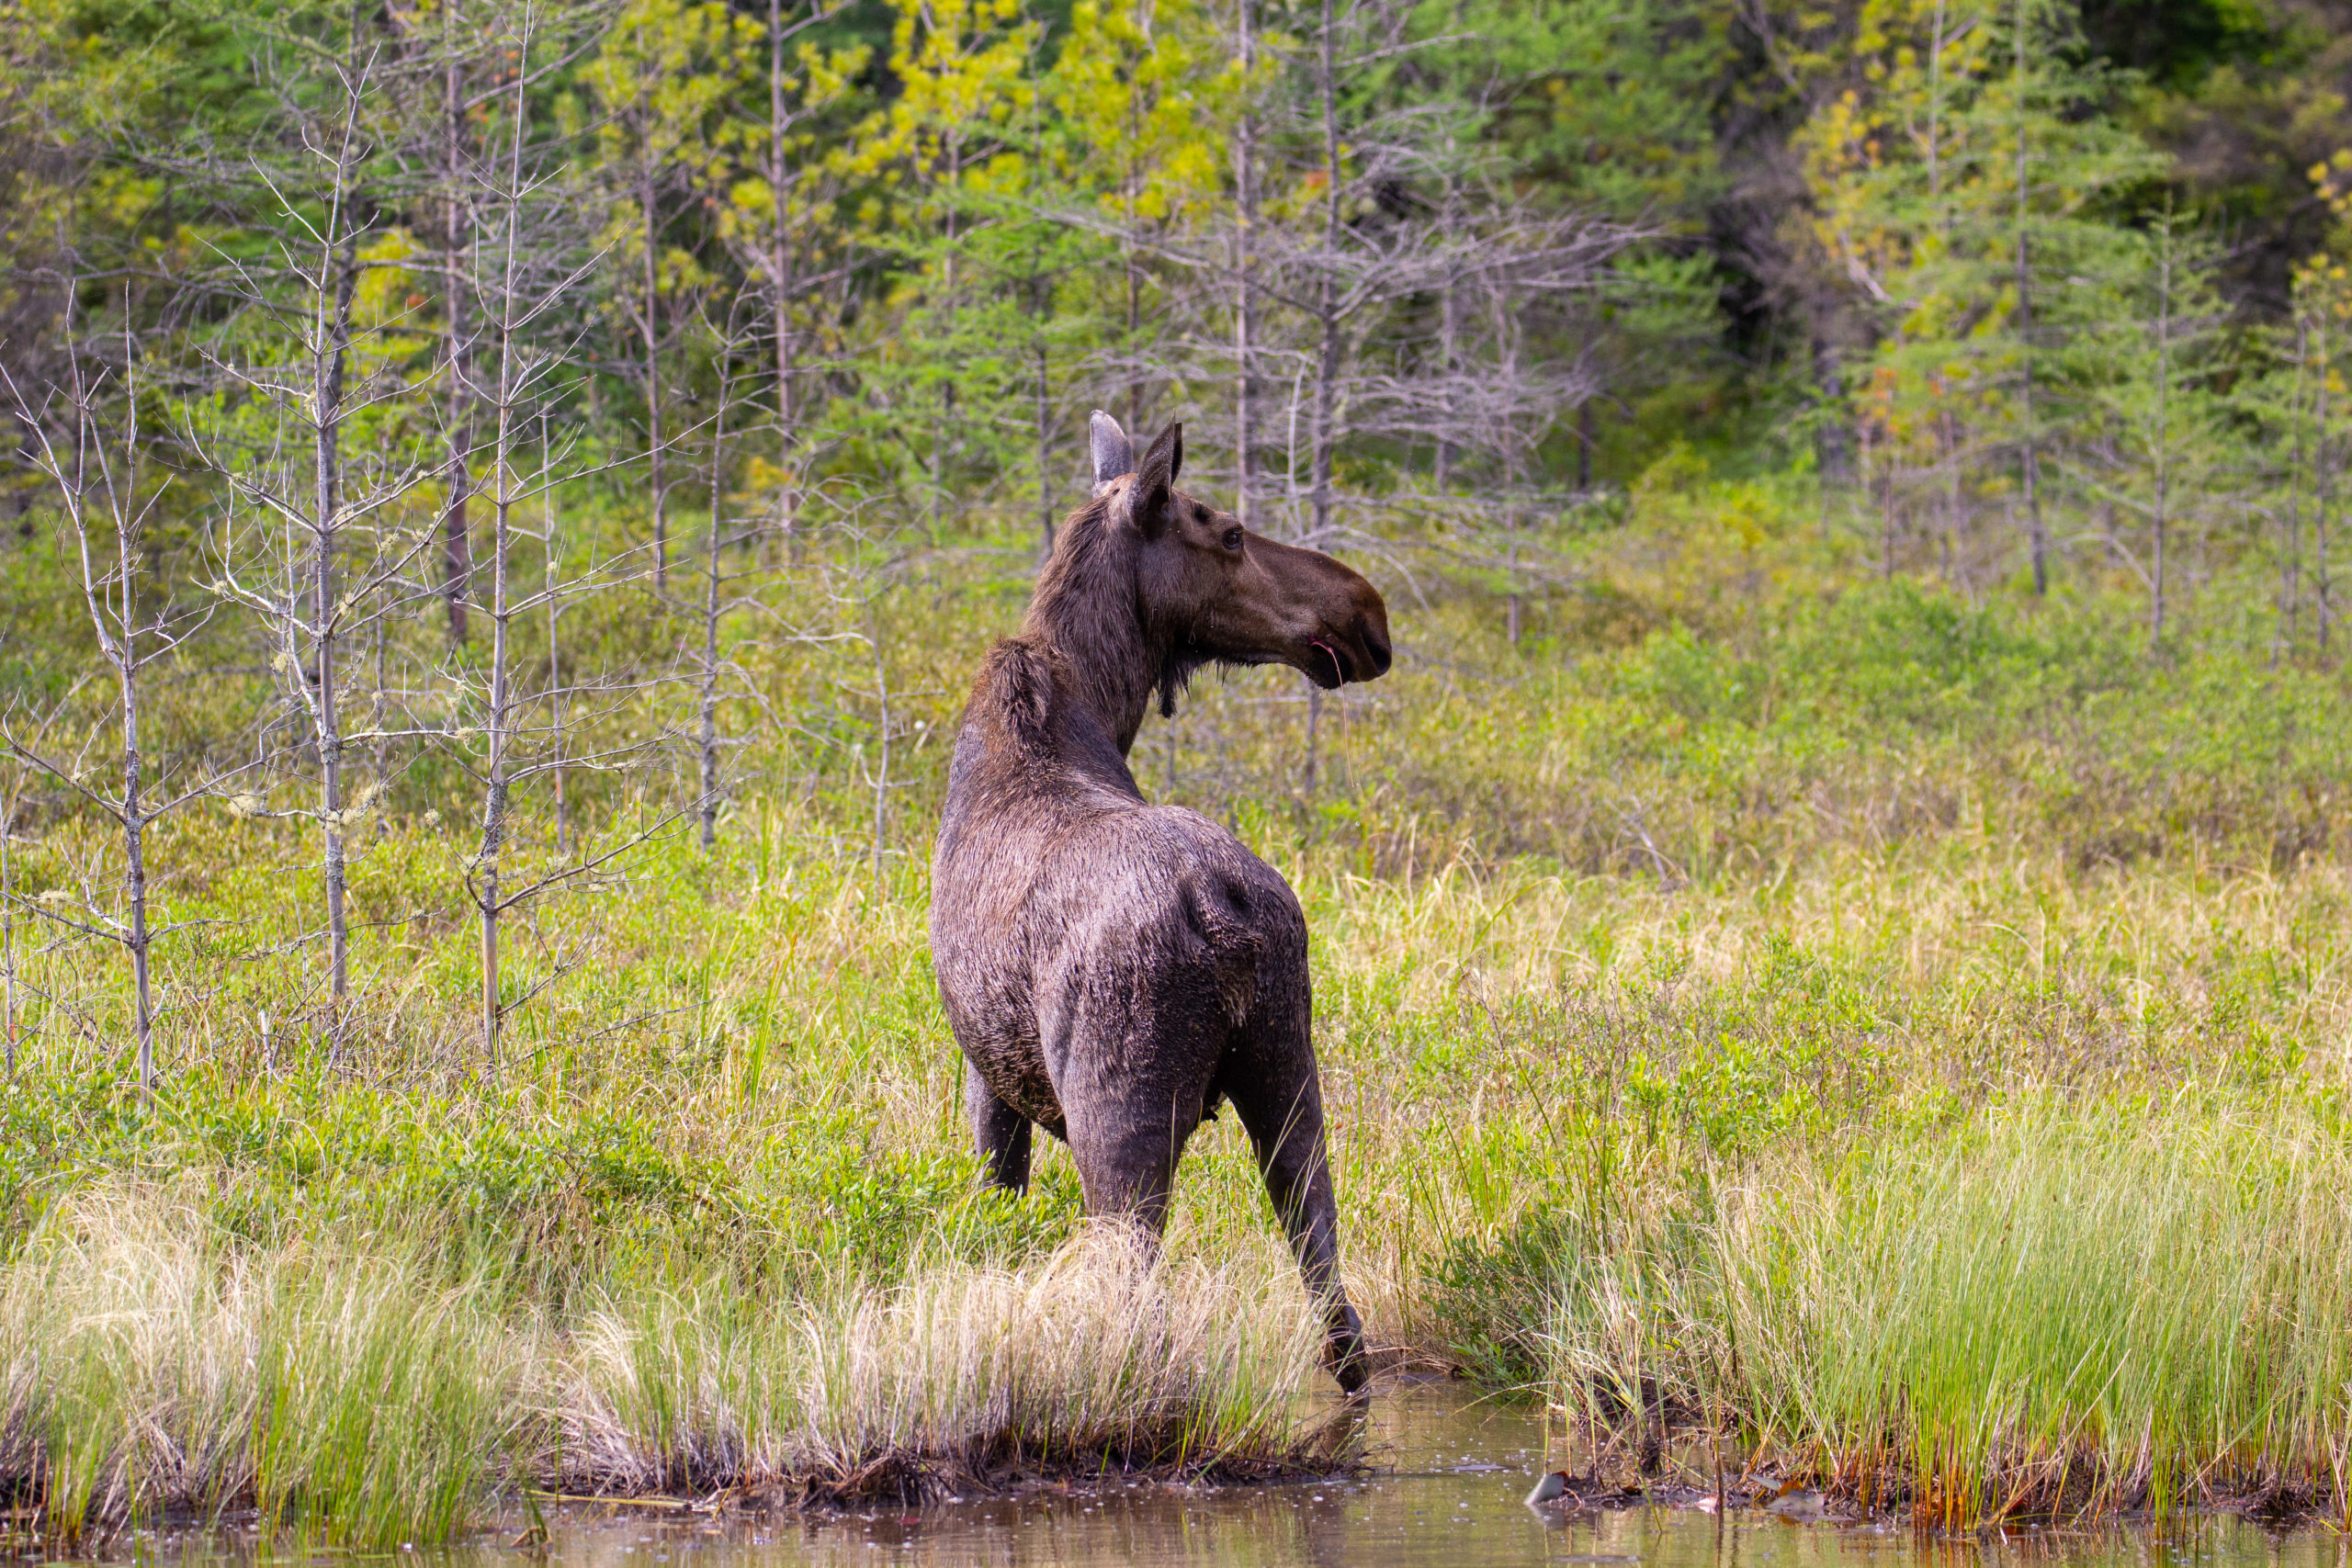 Cow moose foraging in the waters of northern Minnesota